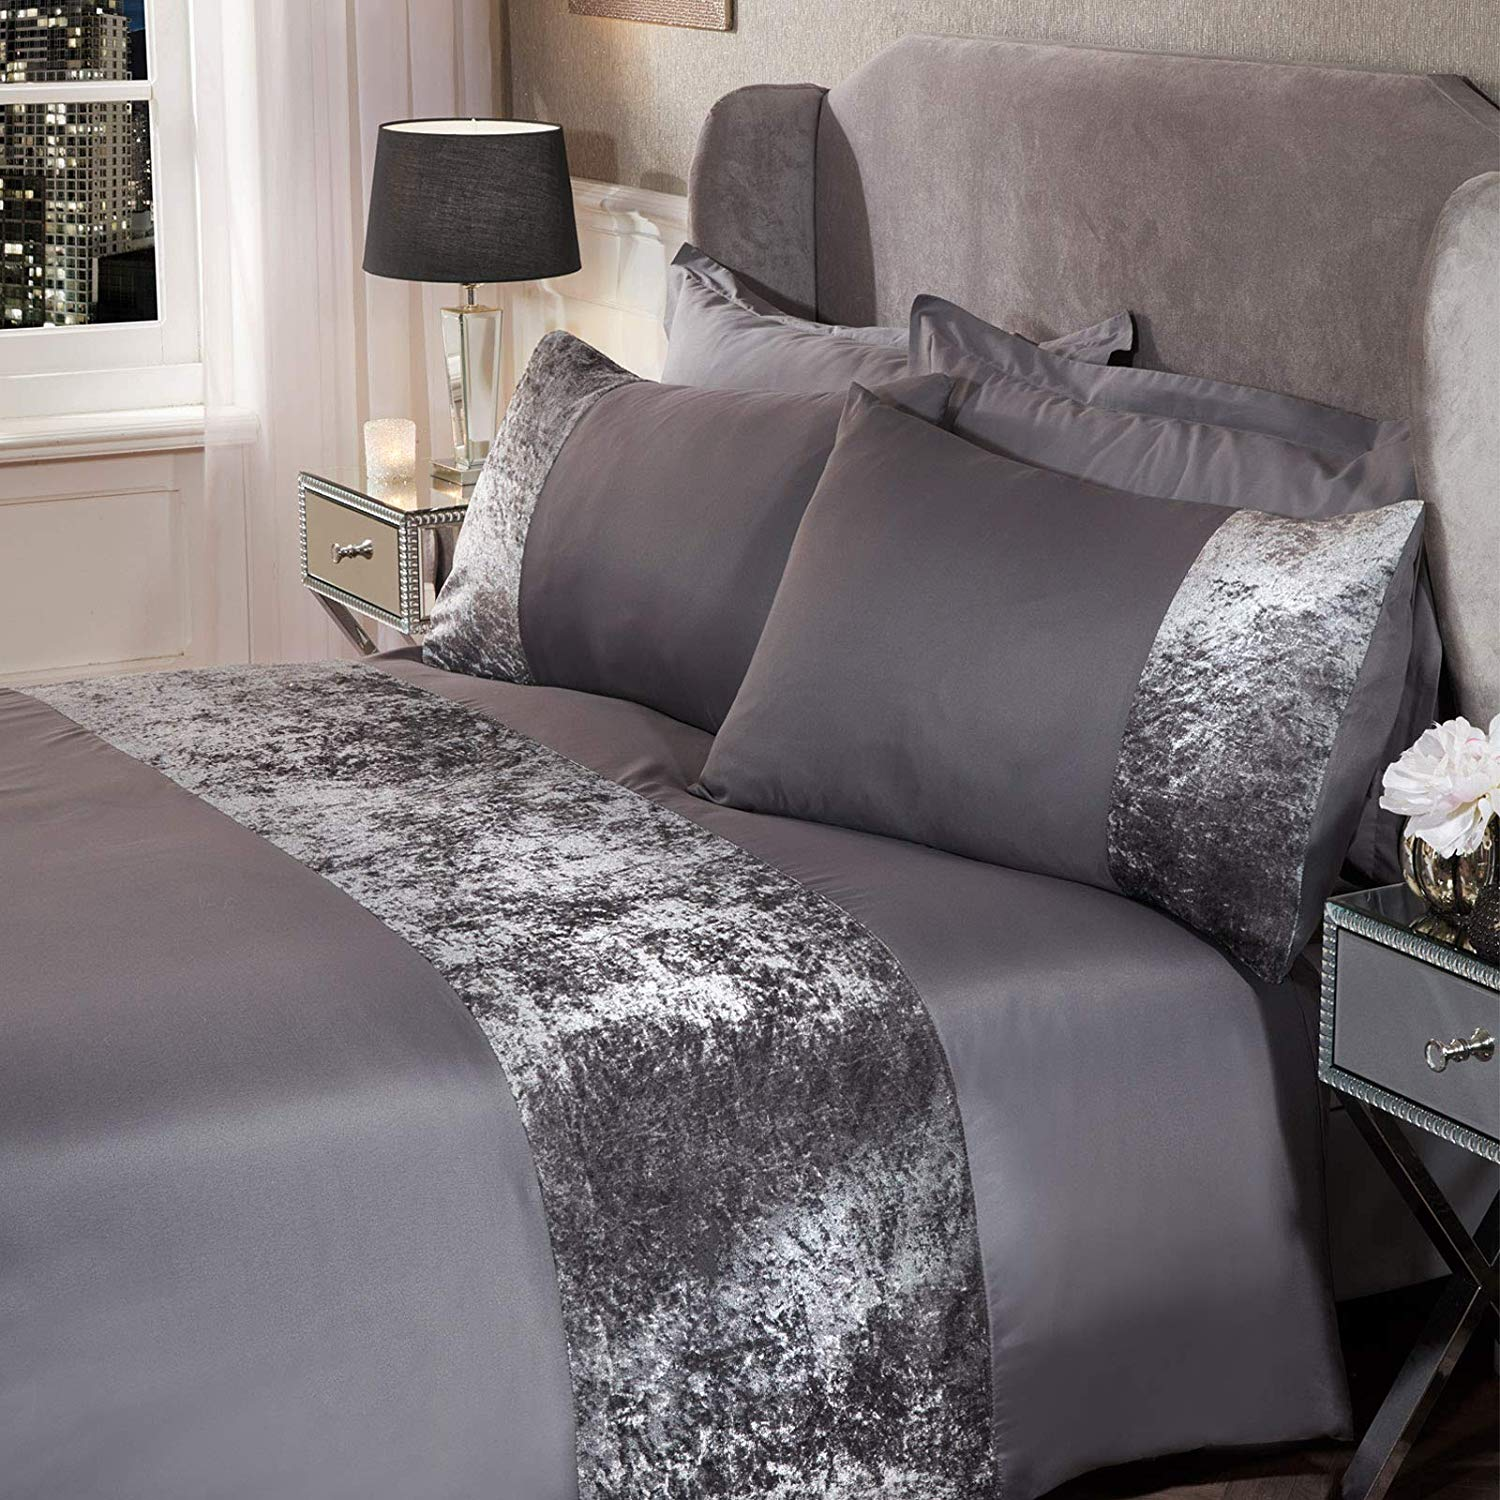 Sienna Crushed Velvet Panel Band Duvet Cover with Pillow Case Bedding Set – Silver Grey delivery